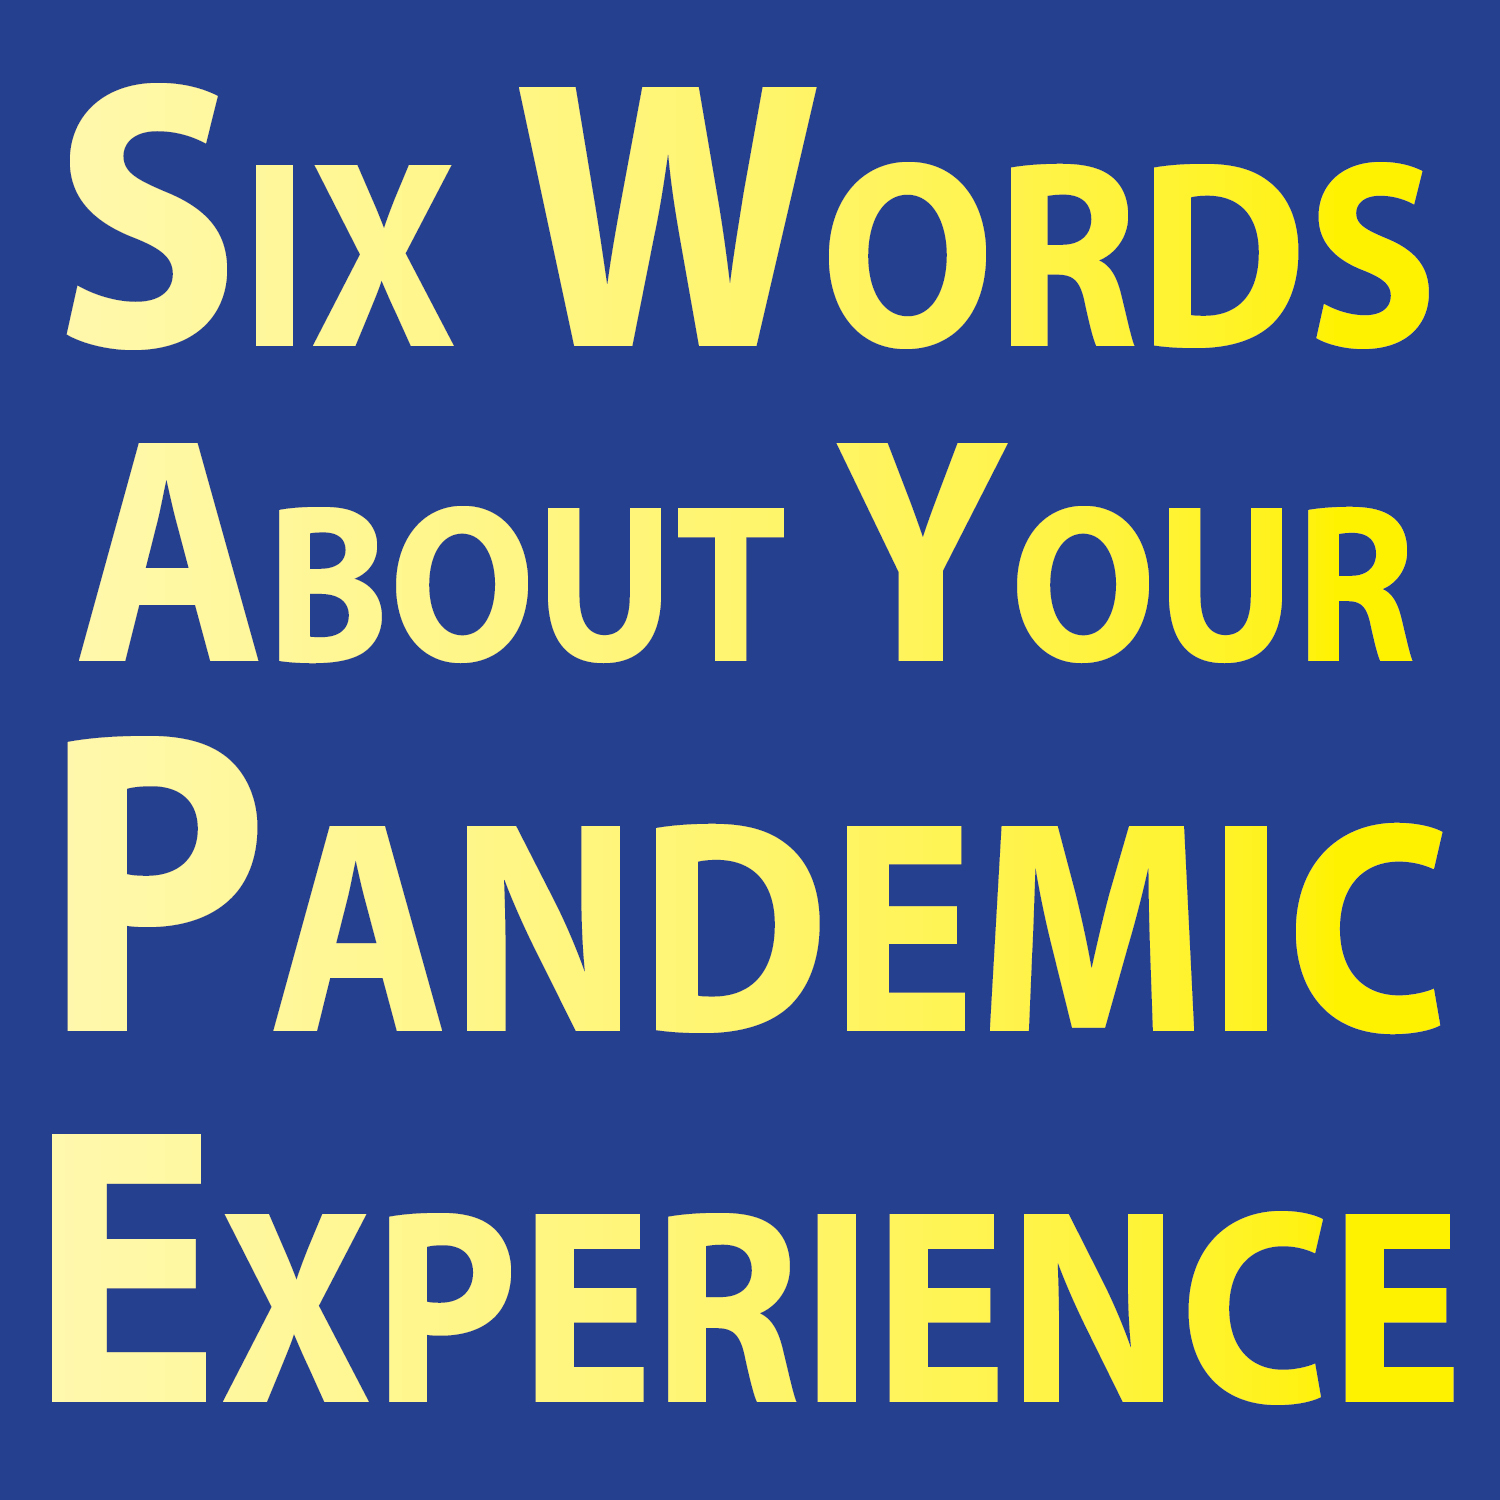 Share your six-word memoirs on the pandemic at FDLPL